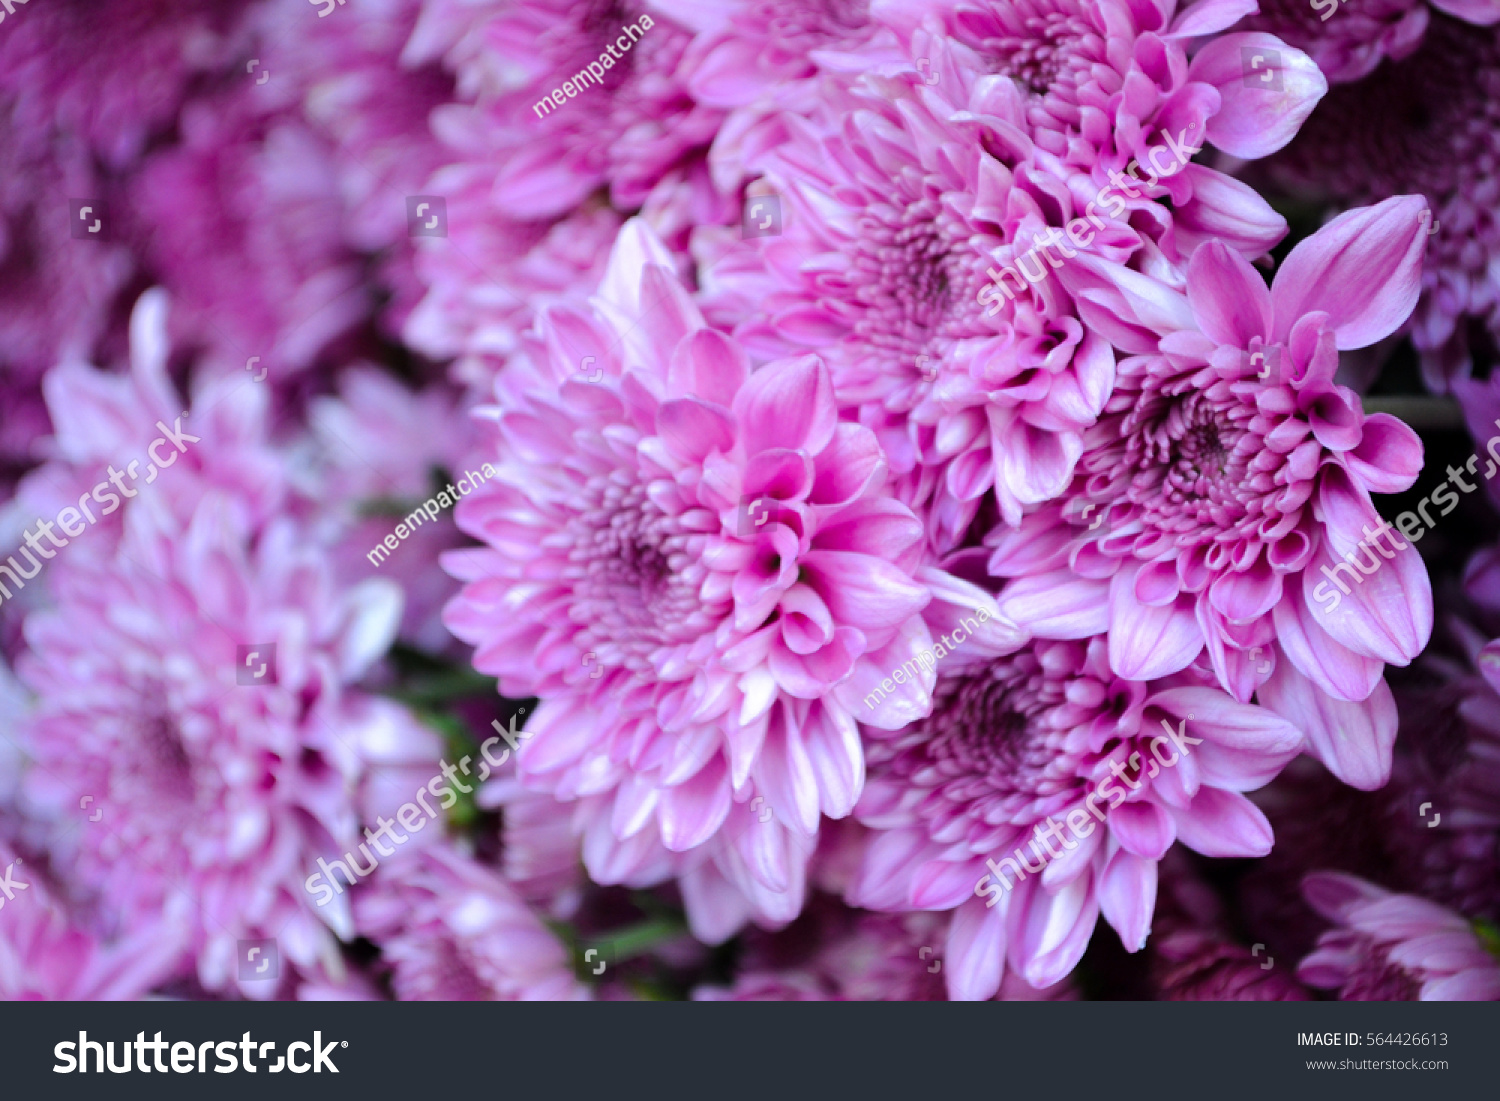 These Are Blooming Purple Or Pink And White Flowers Called